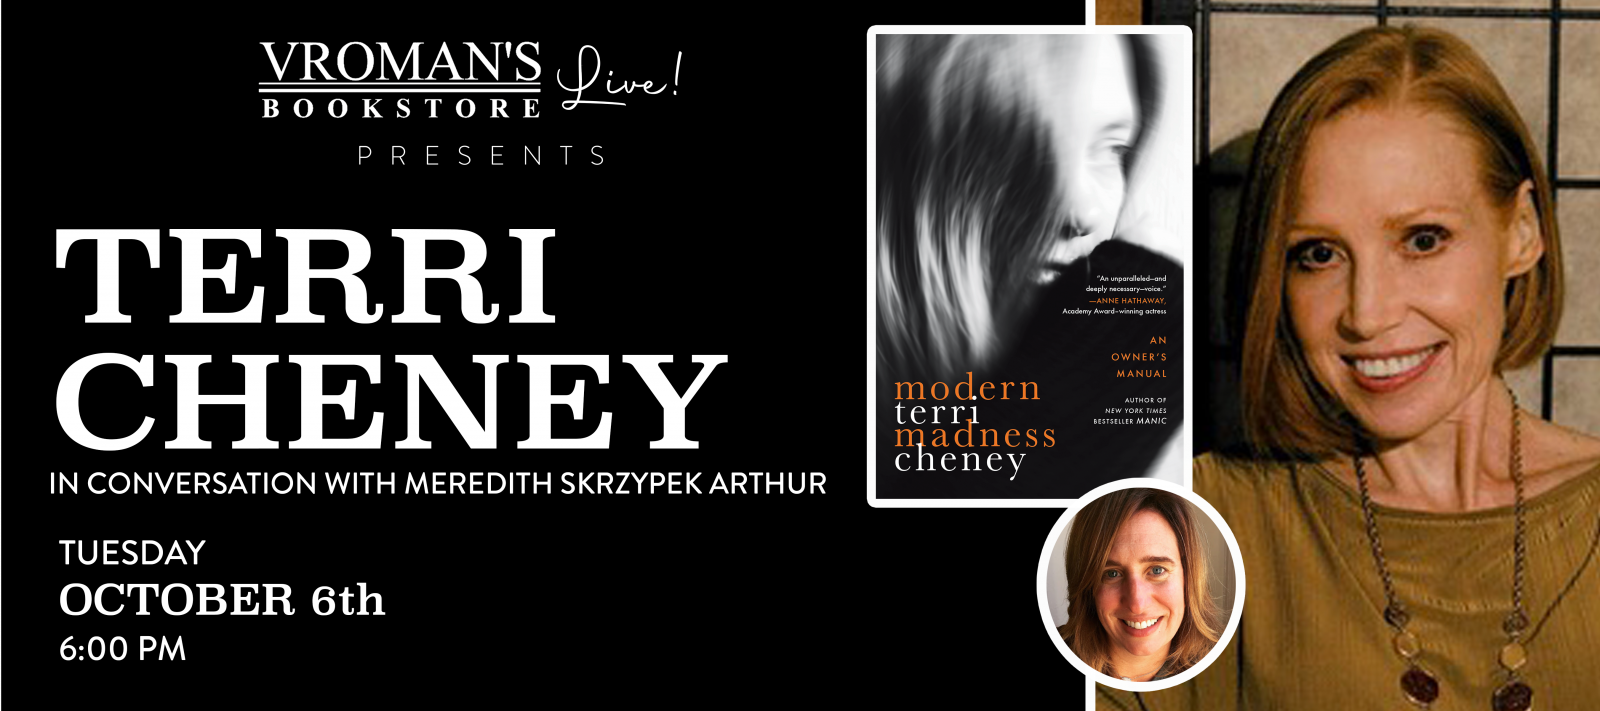 Vroman's Live presents Terri Cheney, in conversation with Meredith Skrzypek Arthur on Tuesday October 6th at 6pm